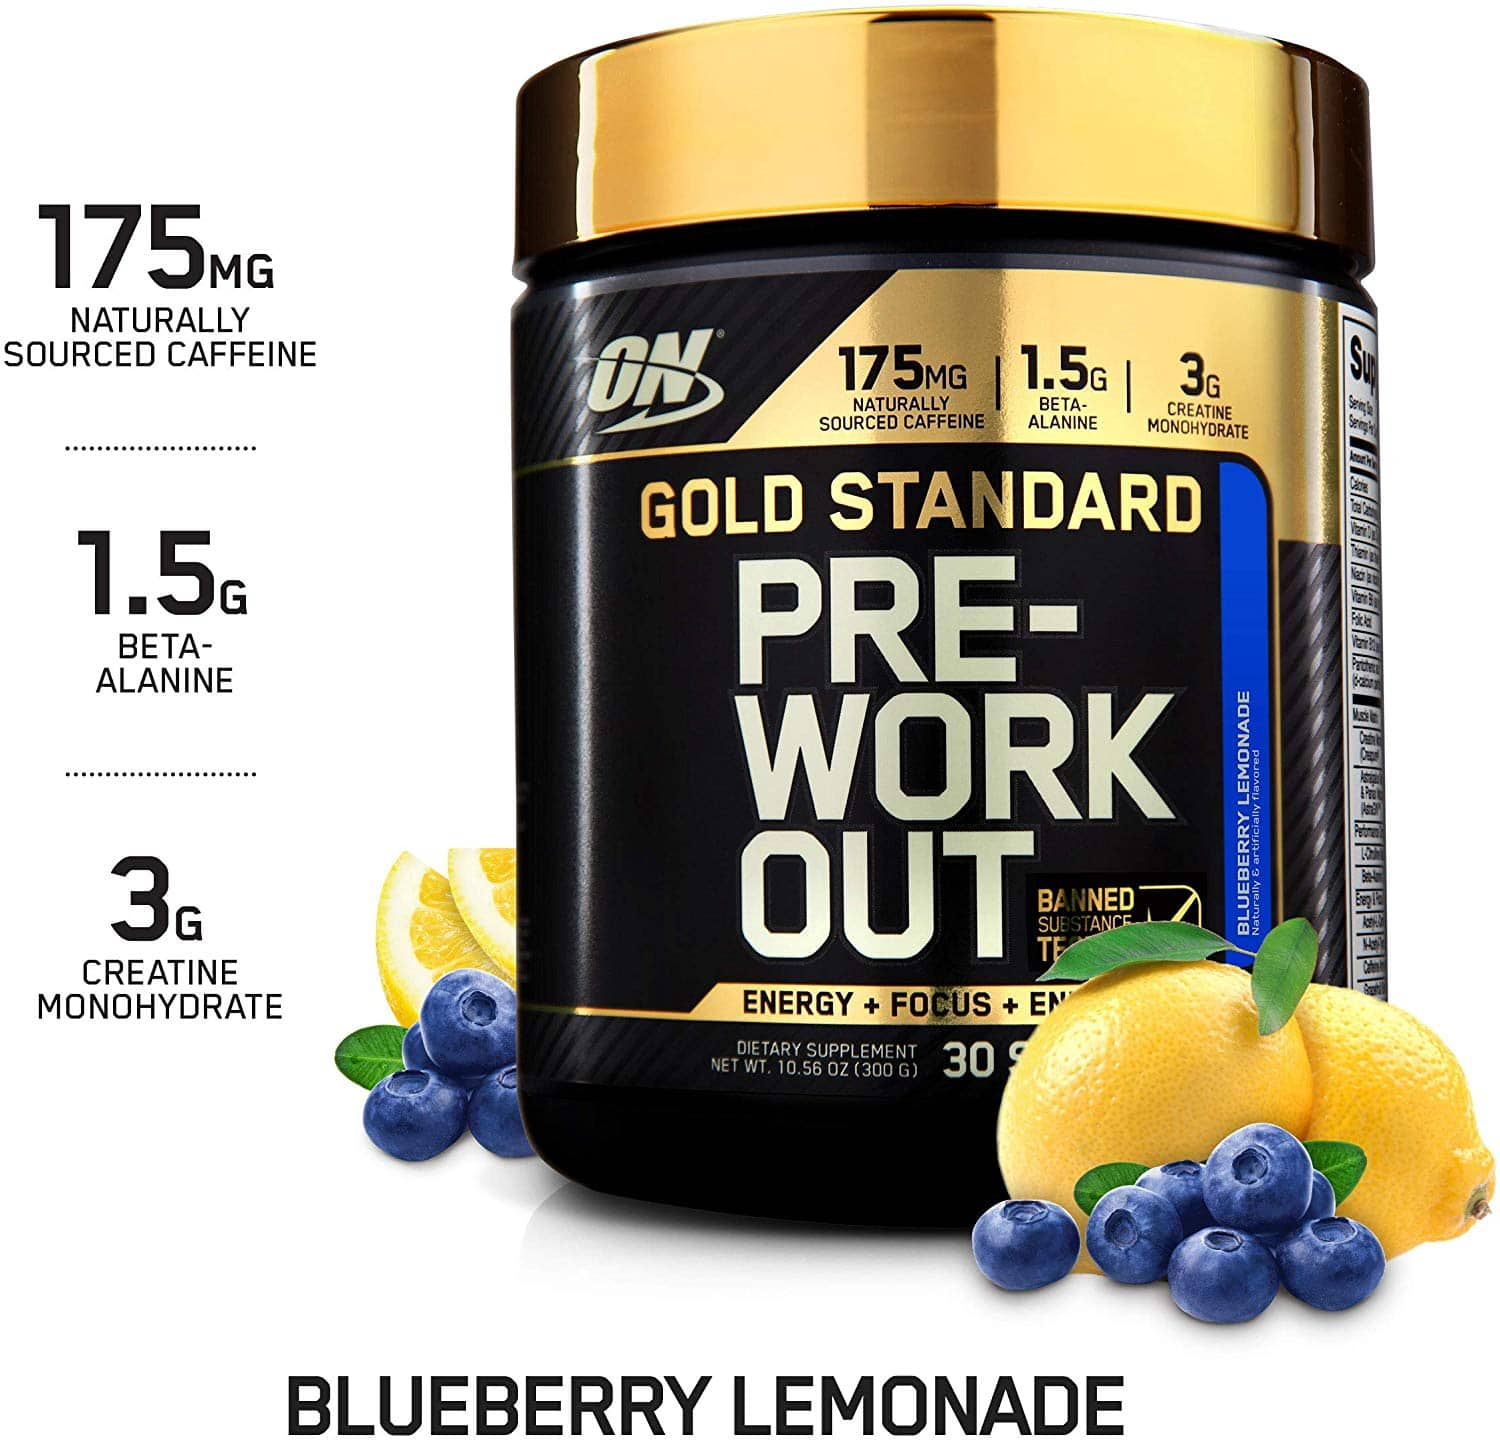 30-Servings Optimum Nutrition Gold Standard Pre-Workout (Blueberry Lemonade or Green Apple) $10.36 or Less w/ S&S + Free S&H ~ Amazon